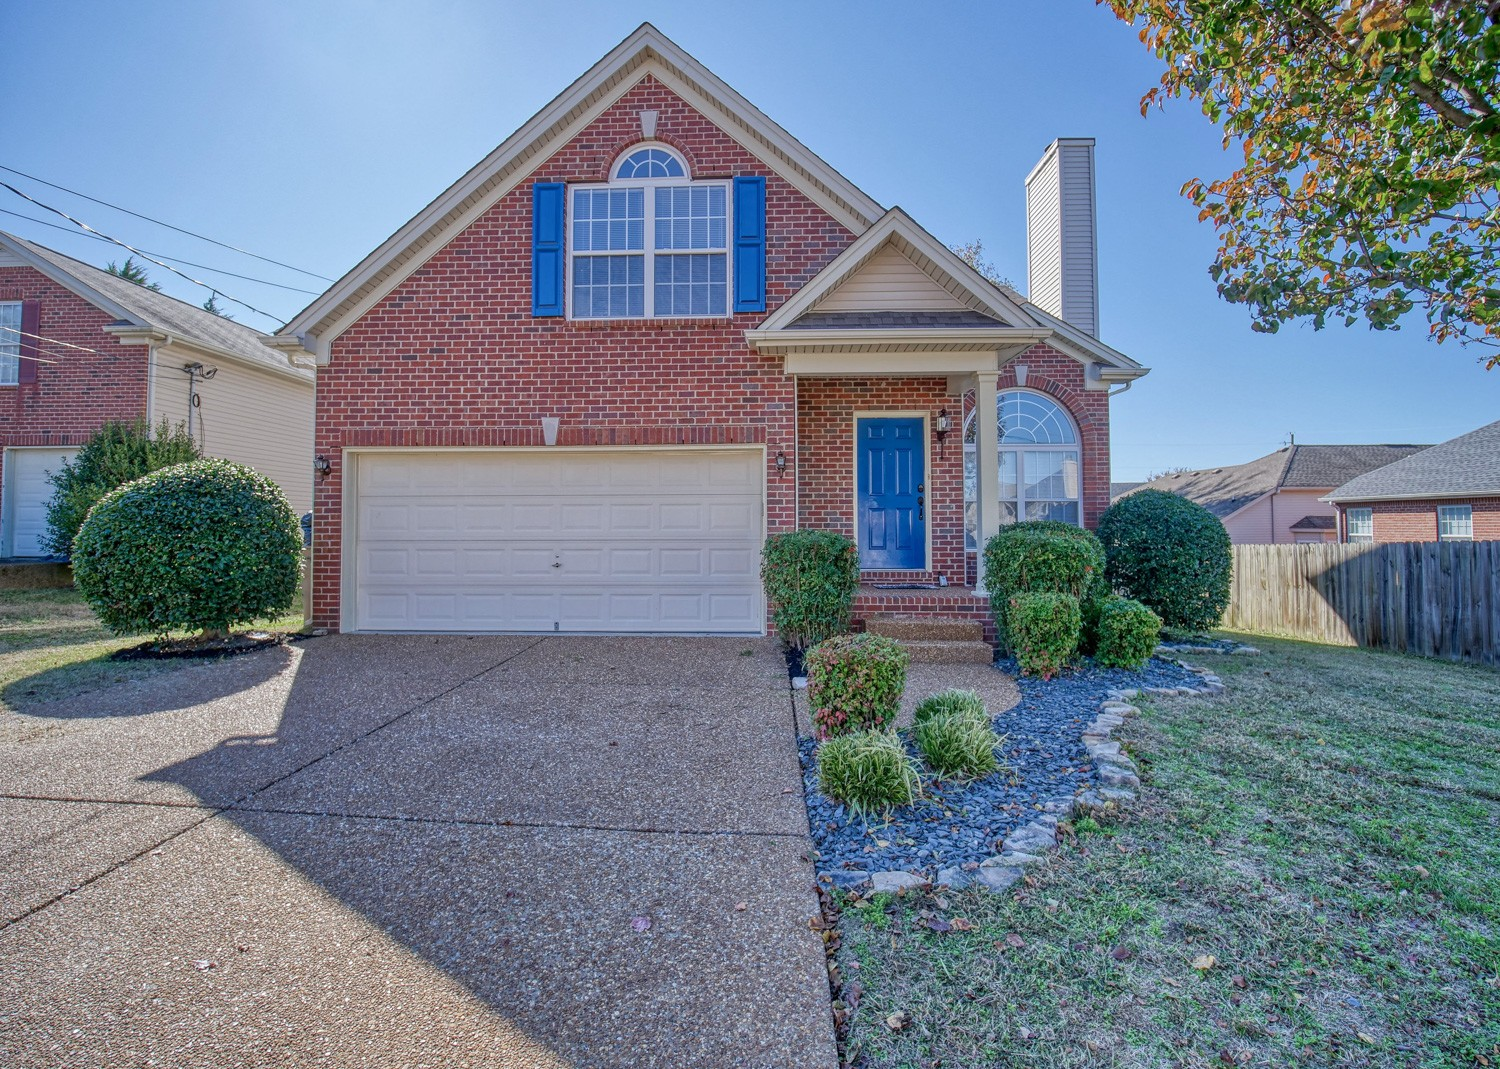 604 Chestwick Ct, Nashville-Antioch in Davidson County County, TN 37013 Home for Sale